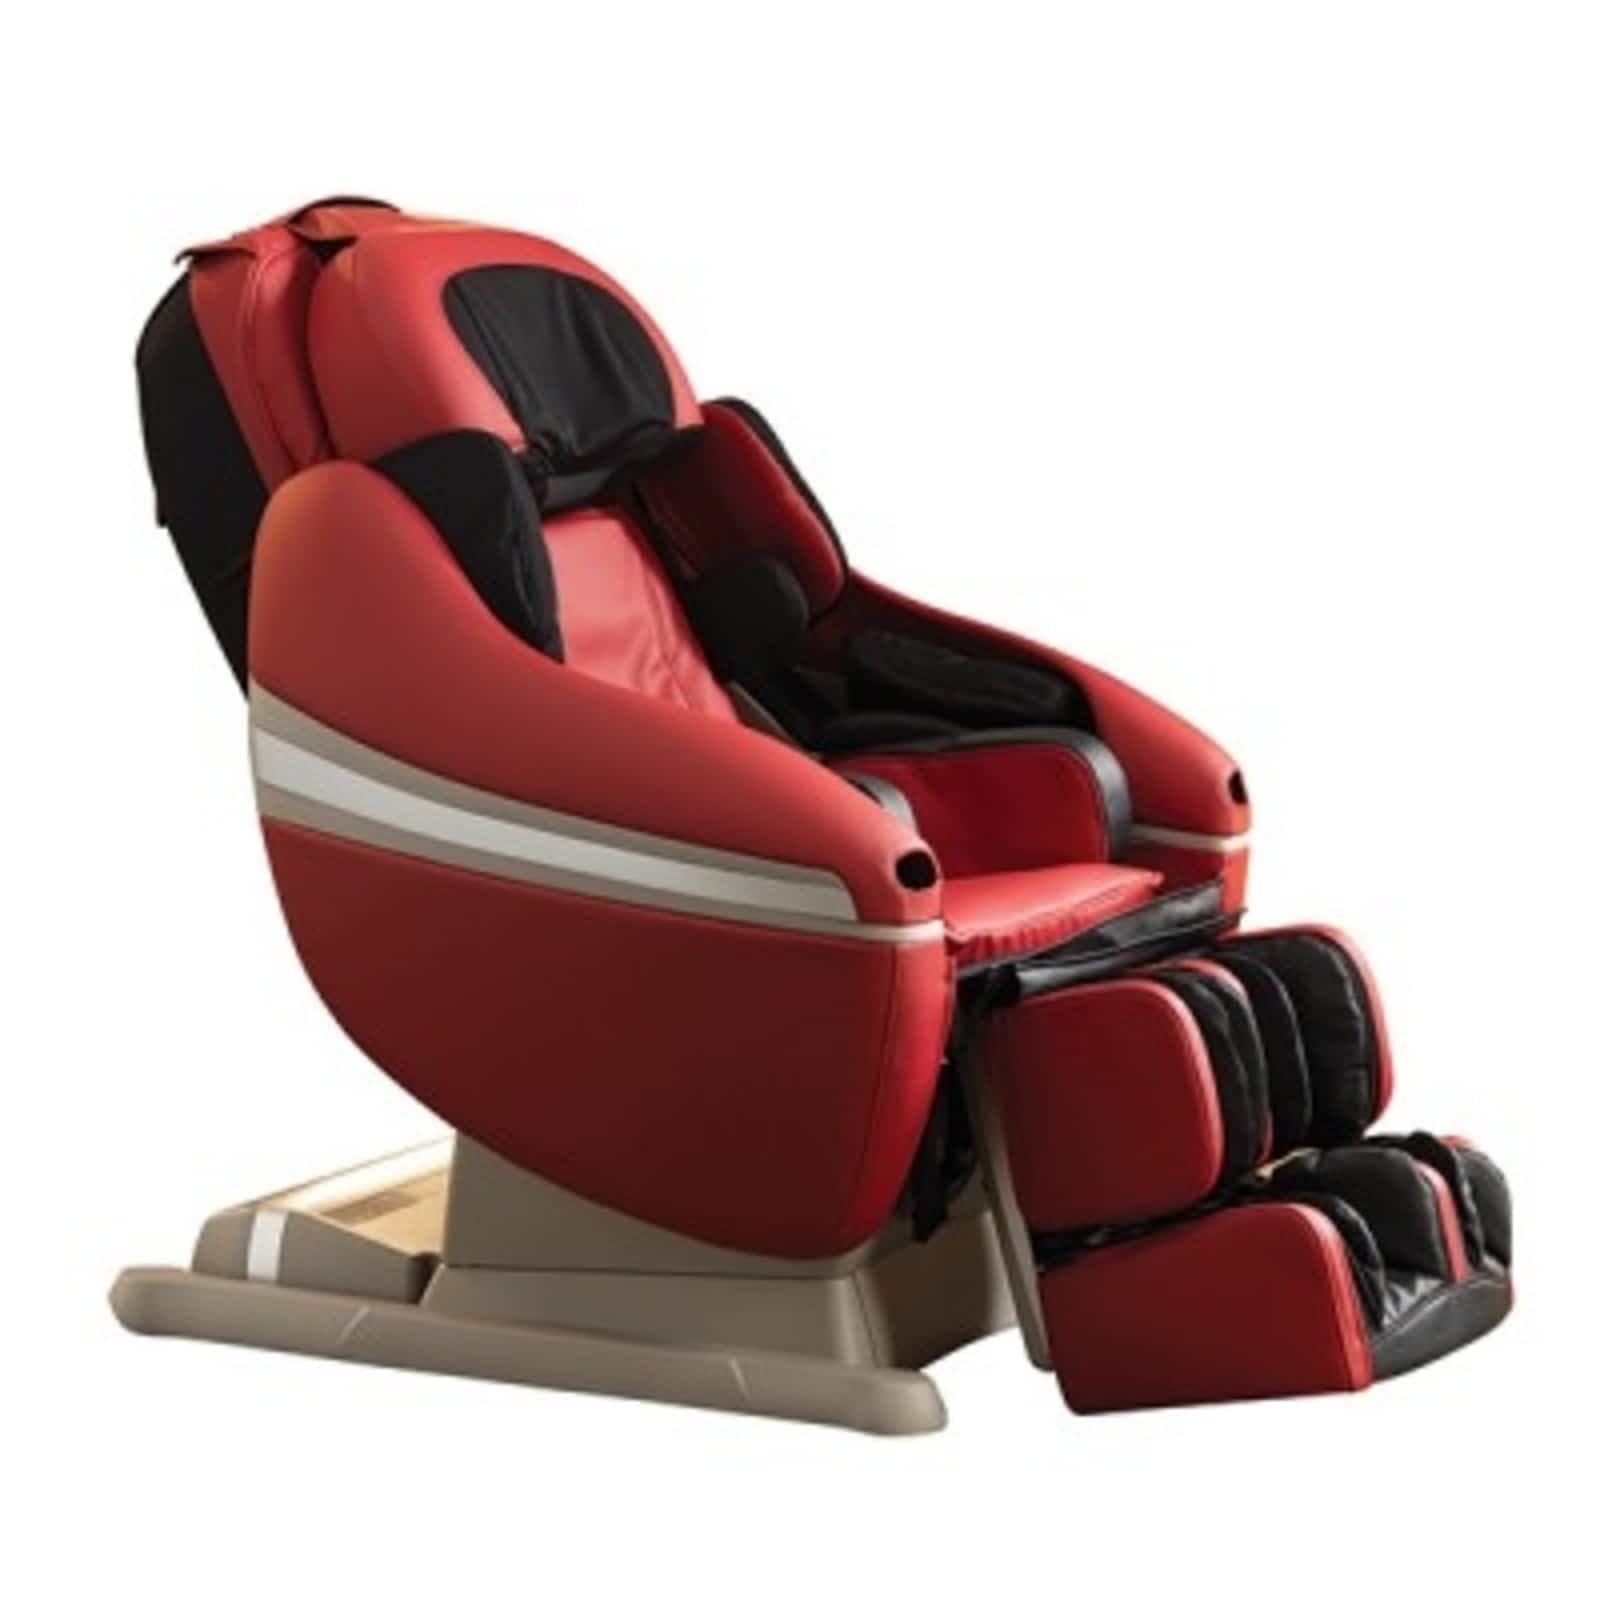 relax the back mobility lift chair covers for purchase medi chairs canada top